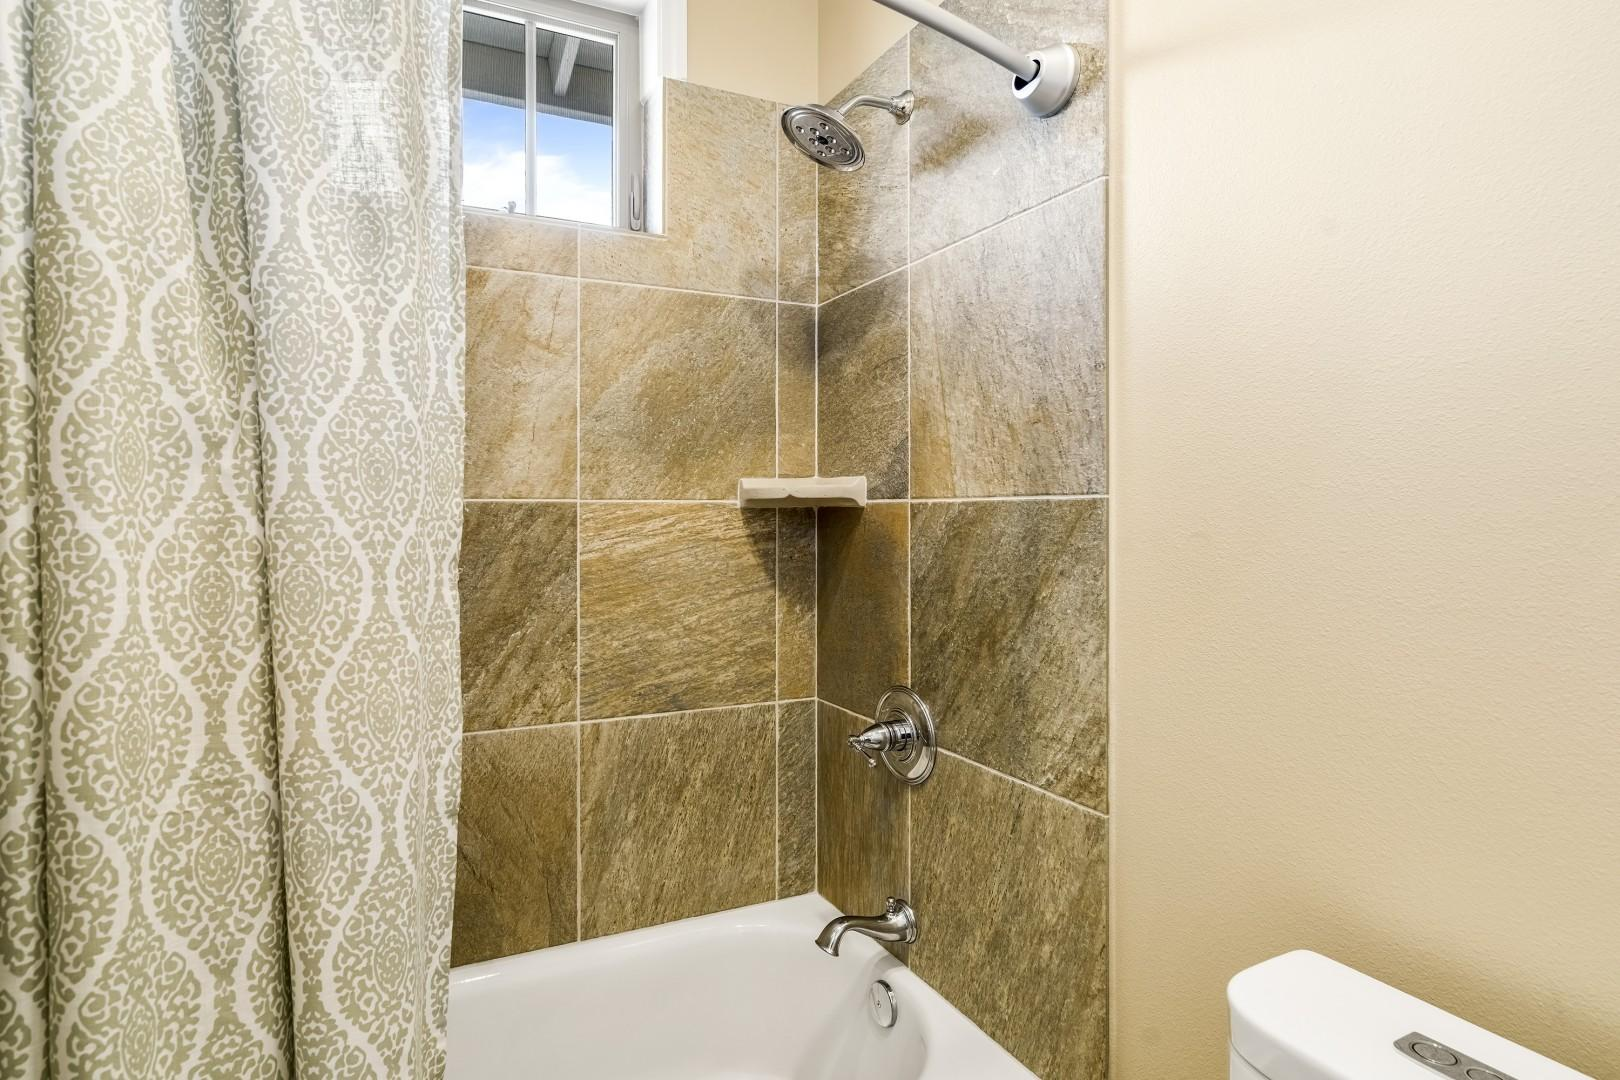 Tub / shower combo in the upstairs guest bathroom